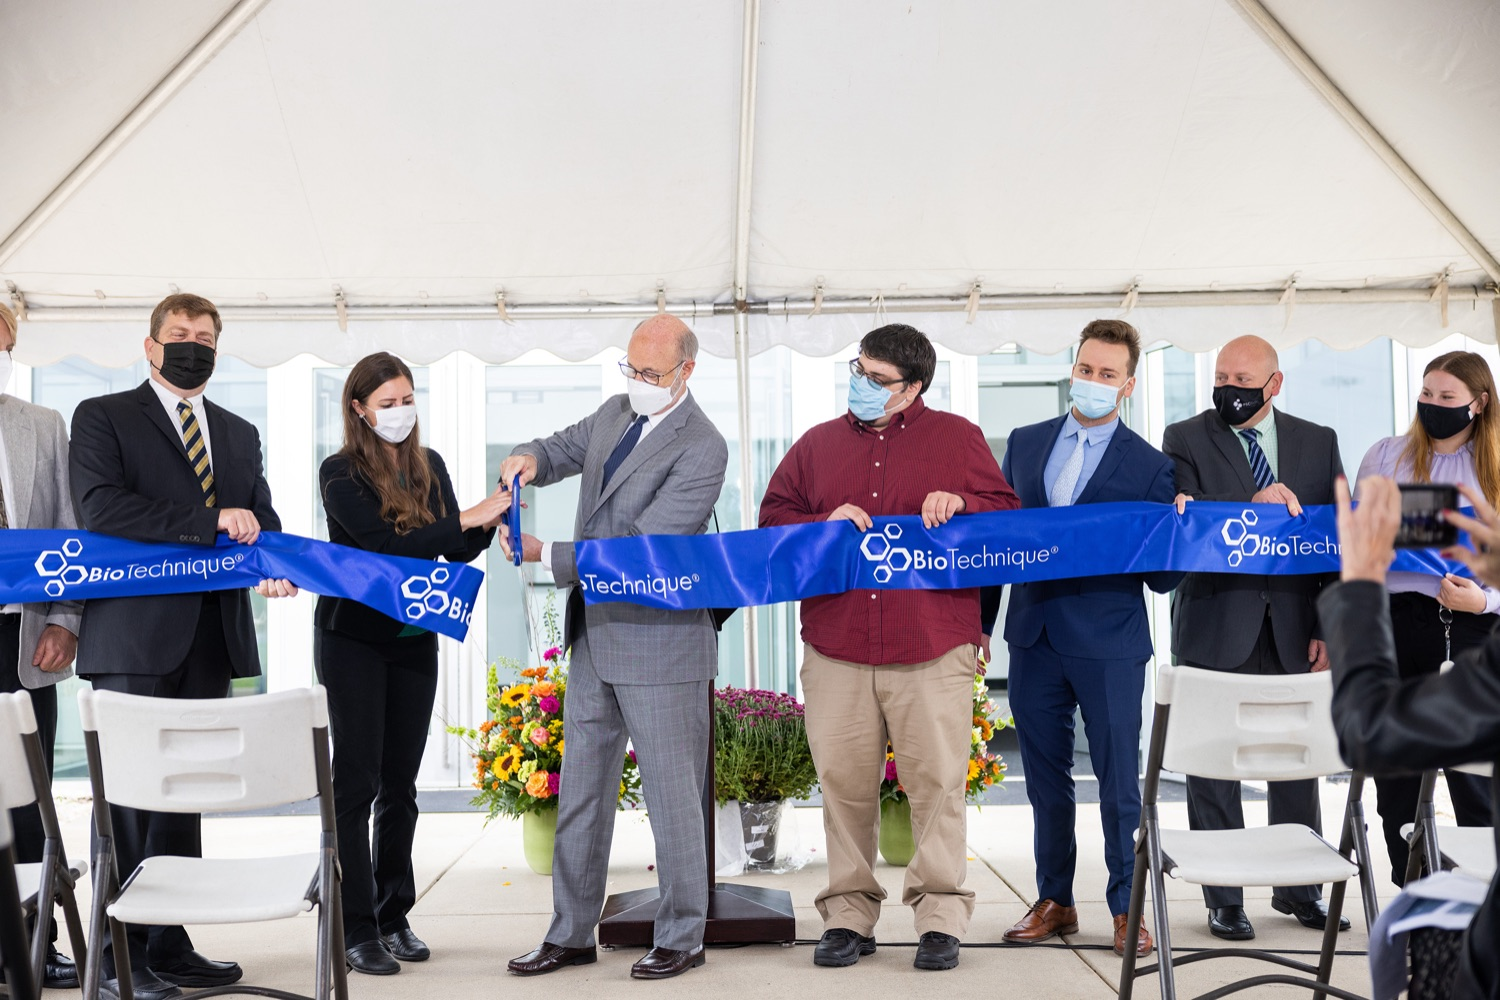 """<a href=""""https://filesource.wostreaming.net/commonwealthofpa/photo/20138_gov_BioTechniqueRibbon_dz_002.JPG"""" target=""""_blank"""">⇣Download Photo<br></a>Pennsylvania Governor Tom Wolf helps to cut the ribbon.  Governor Tom Wolf today joined BioTechnique CEO John Clapham, the Department of Community and Economic Developments (DCED) Governors Action Team (GAT), York County Economic Alliance CEO Kevin Schreiber, and local officials at the ribbon cutting ceremony for BioTechniques new pharmaceutical manufacturing facility in York County.   OCTOBER 12, 2021 - YORK, PA"""